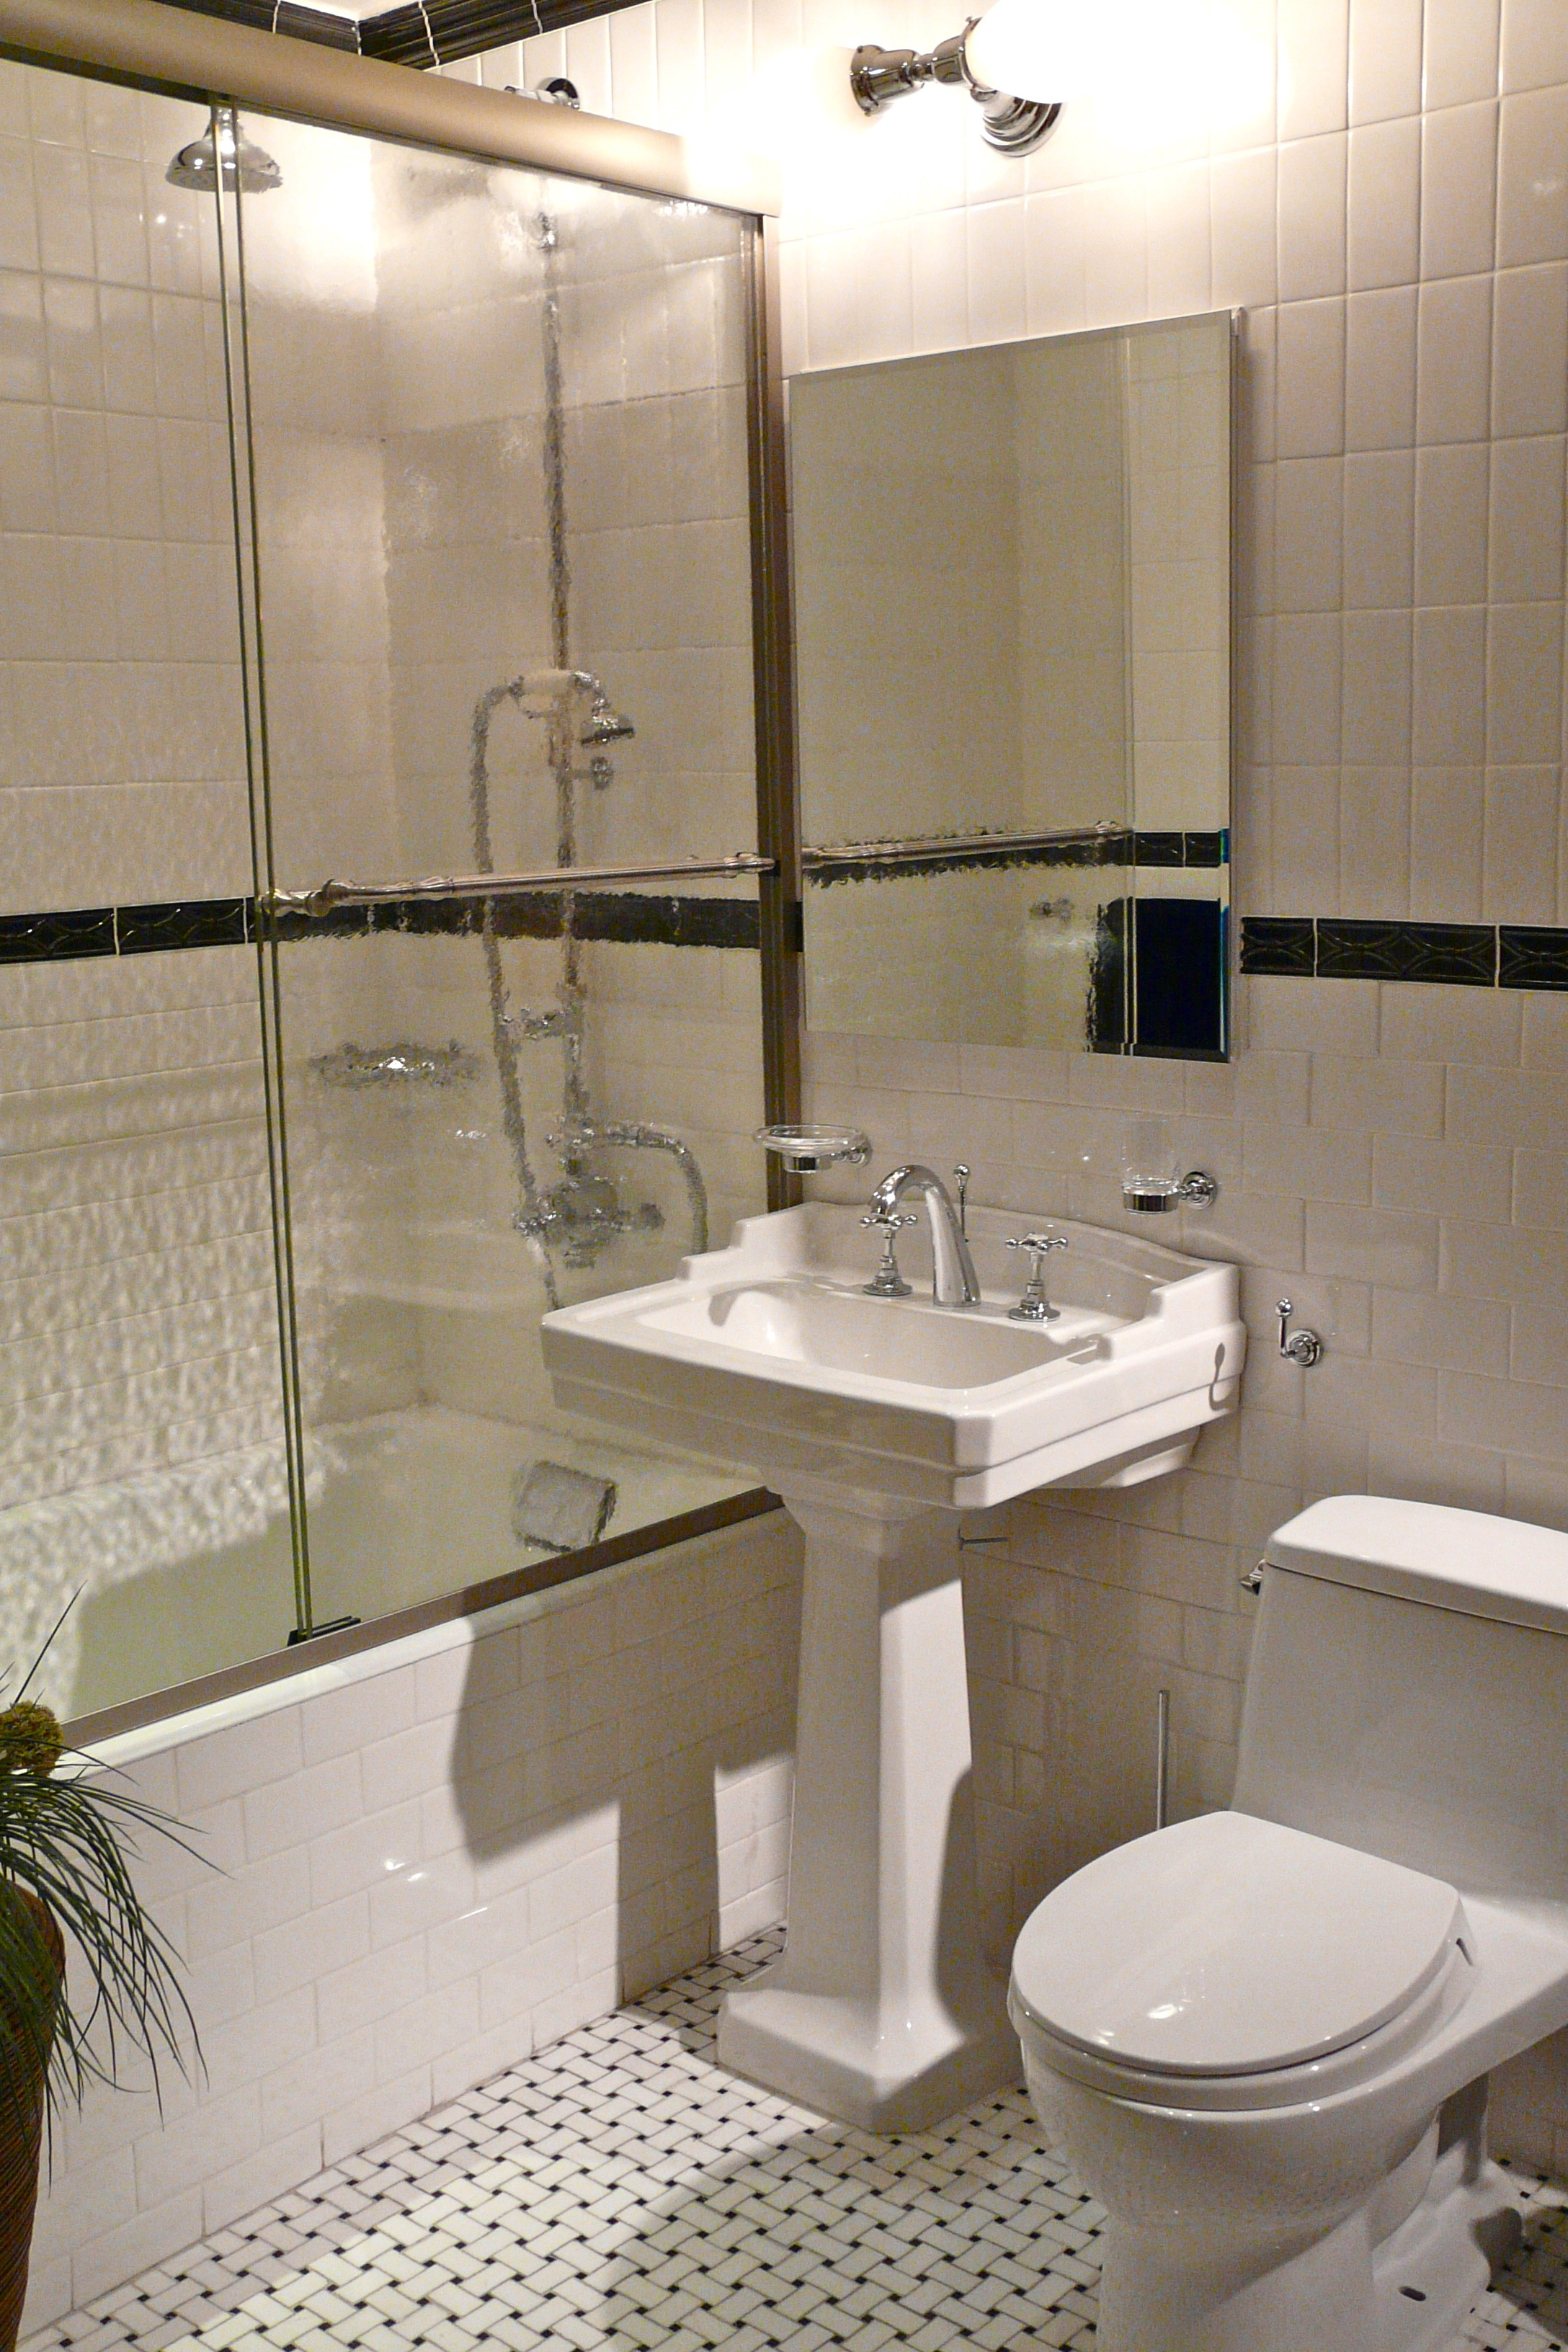 Bathroom Designs Home Improvement - Bathroom designs for small spaces for small bathroom ideas